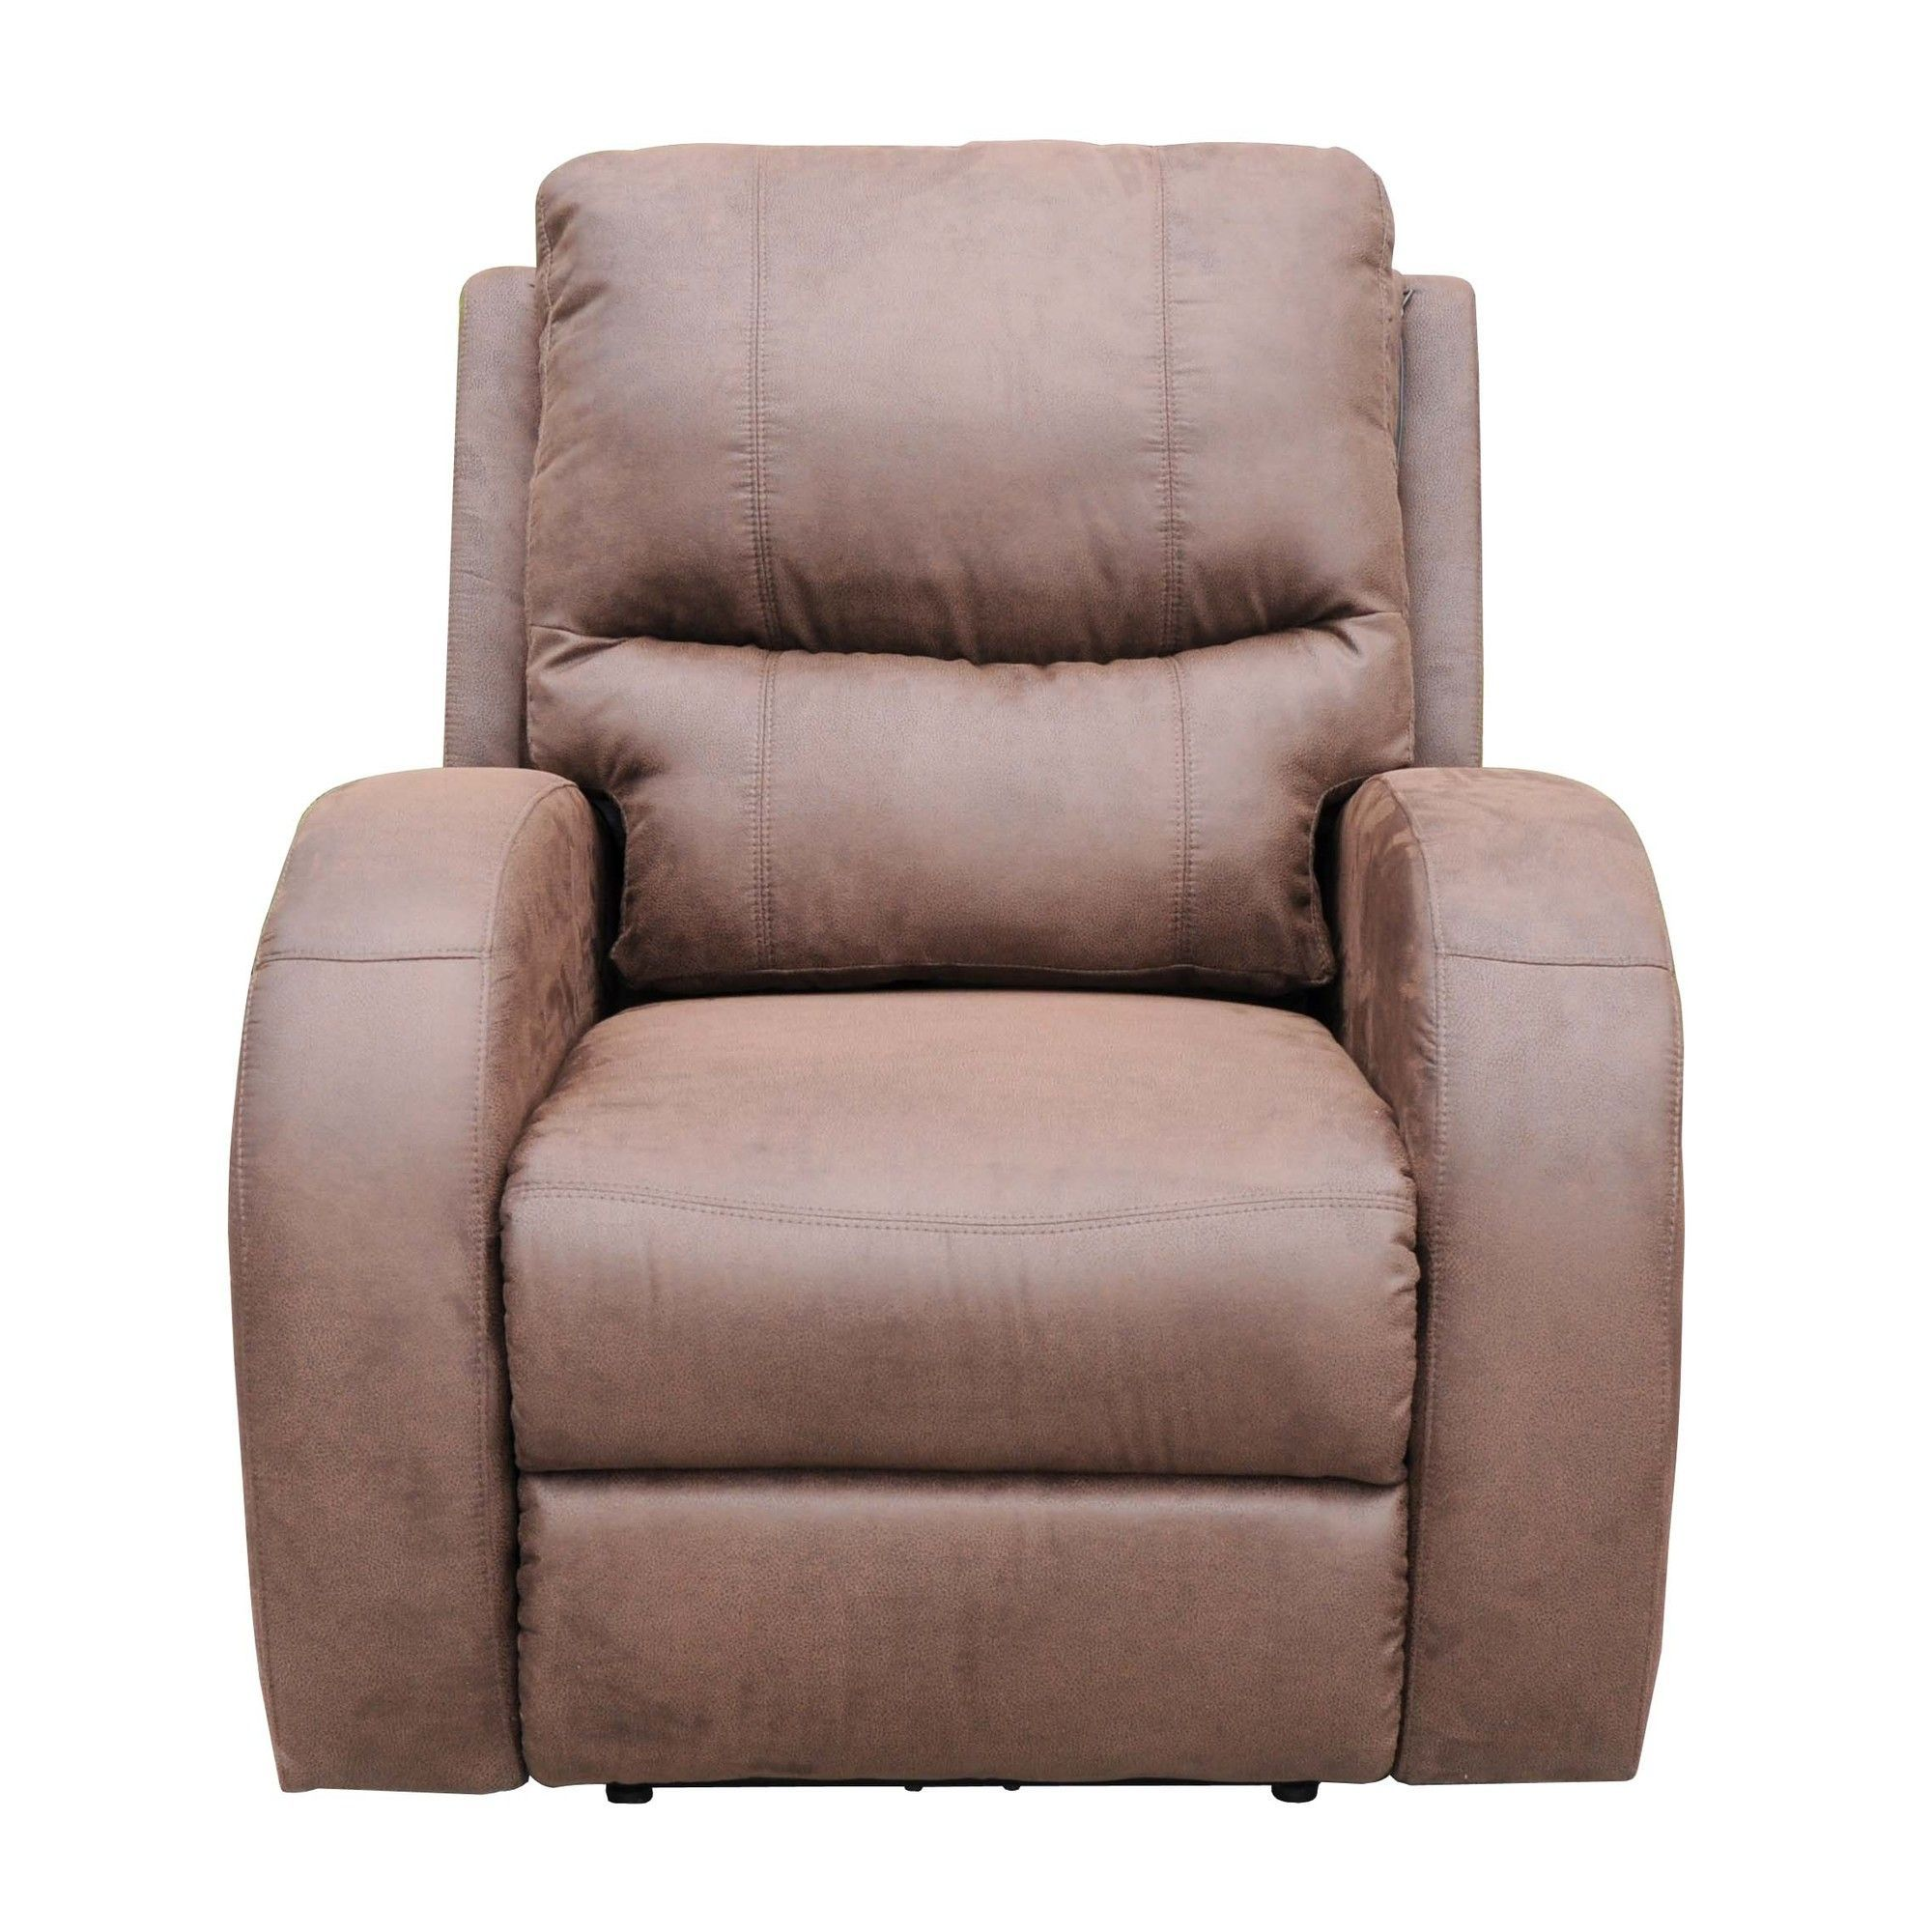 Ac pacific polyester reclining massage chair chair fire